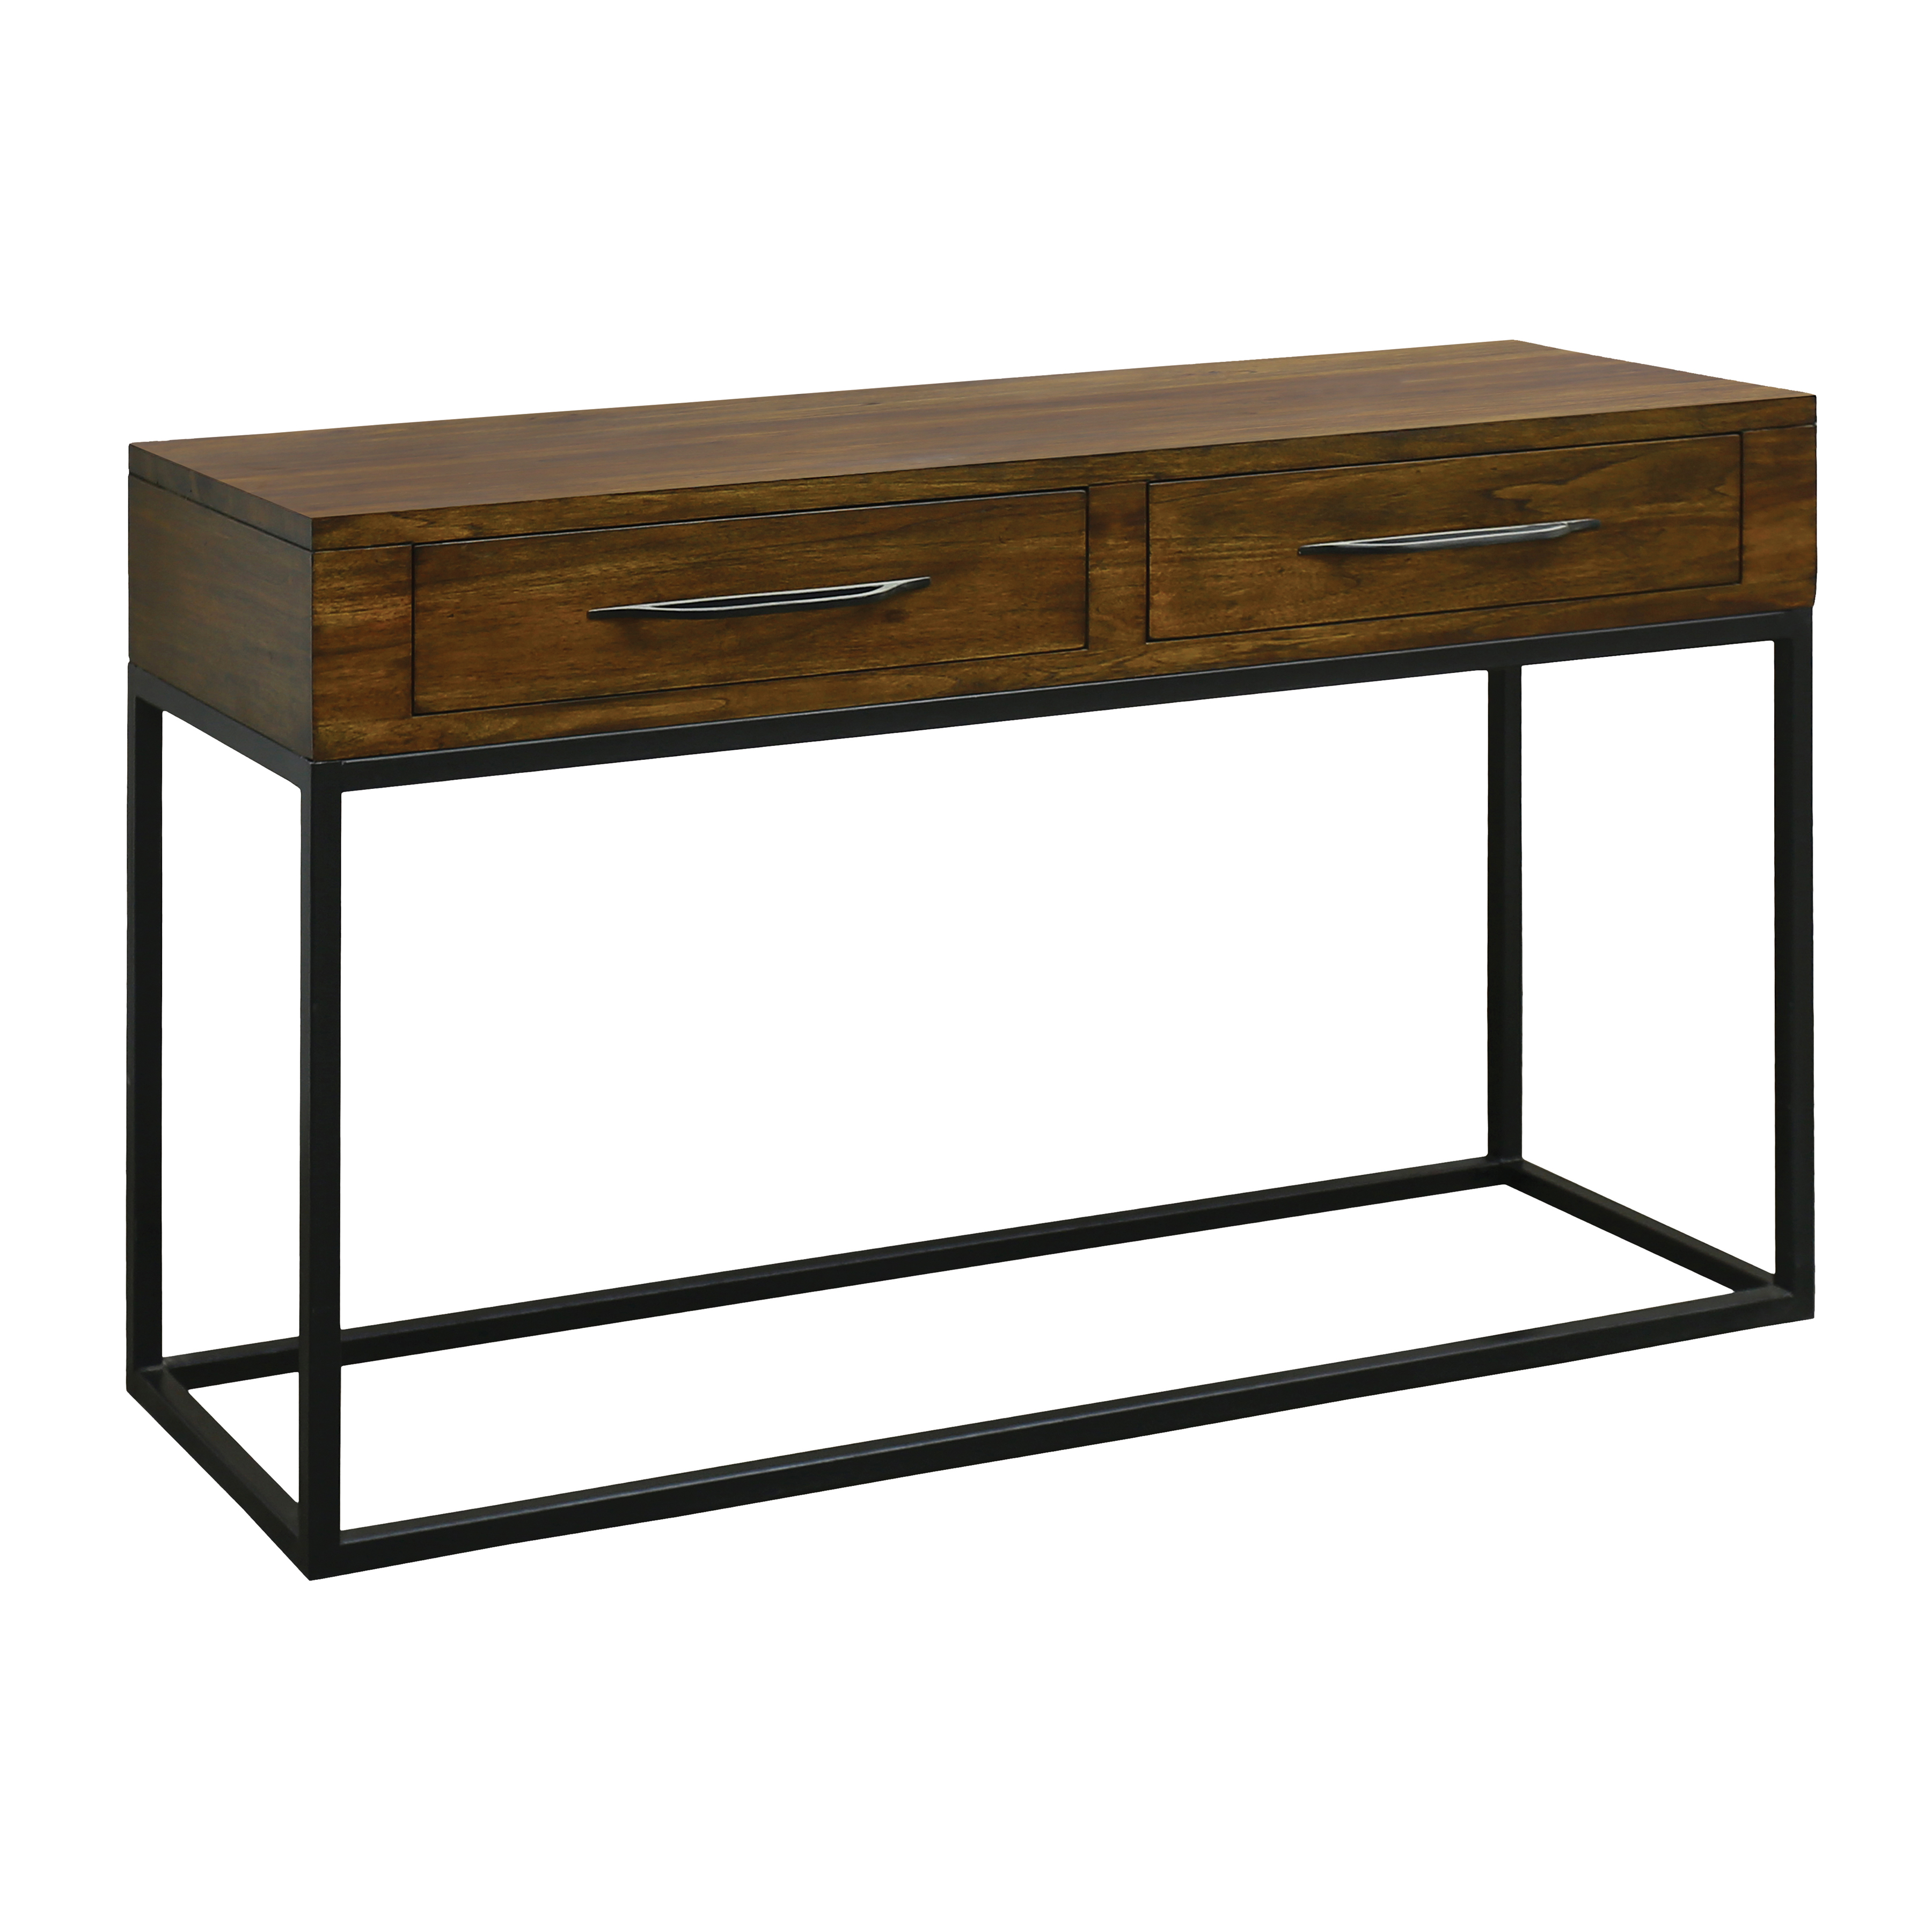 Stanley 2-Drawer Console Table in Wood And Metal 7119505 | ELK Home